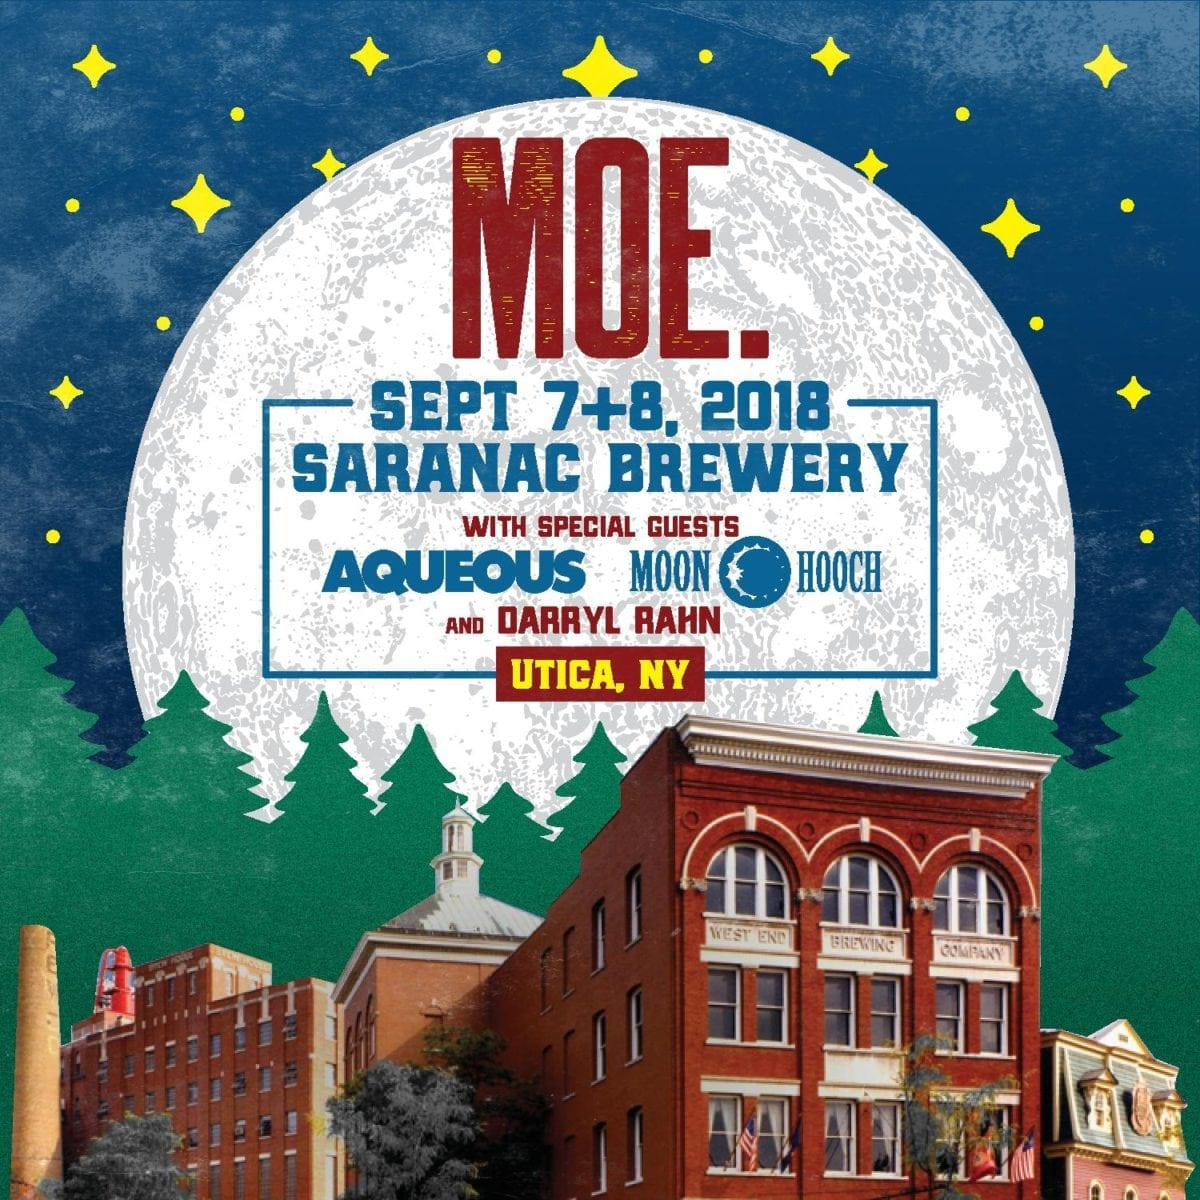 moe. returns to Saranac Brewery on September 7 and 8 | Utter Buzz!